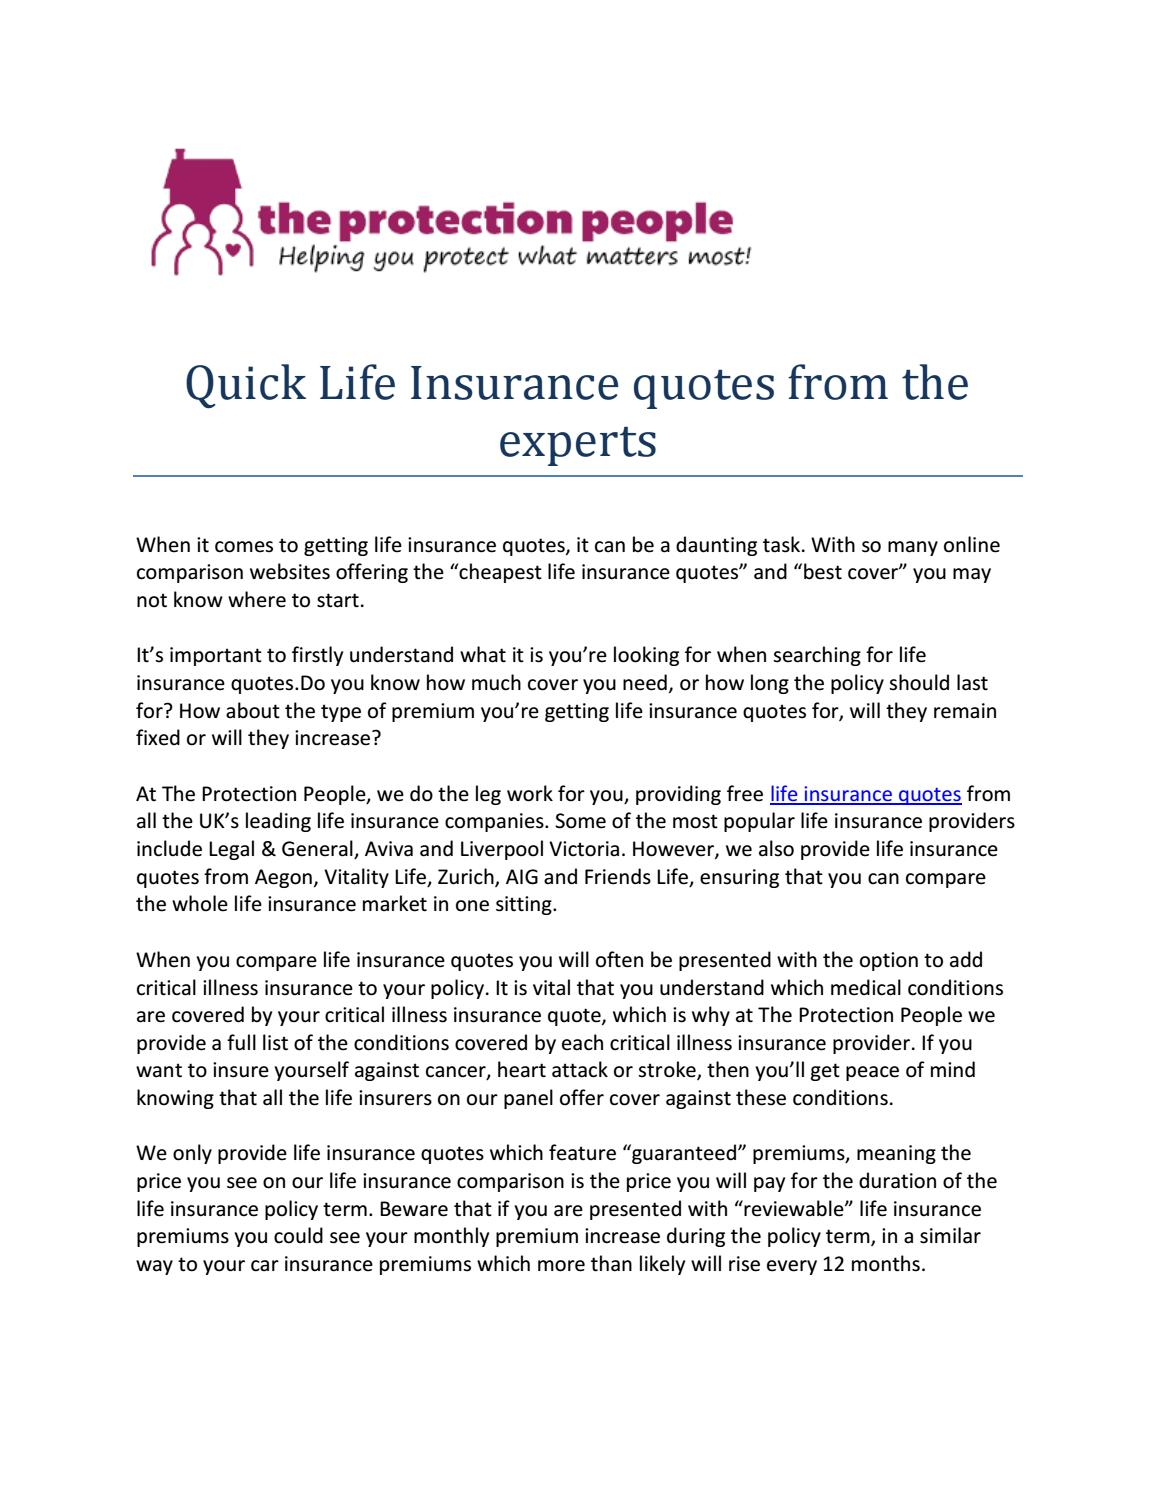 Quick Life Insurance Quote Stunning The Protection People  Quick Life Insurance Quotes From The